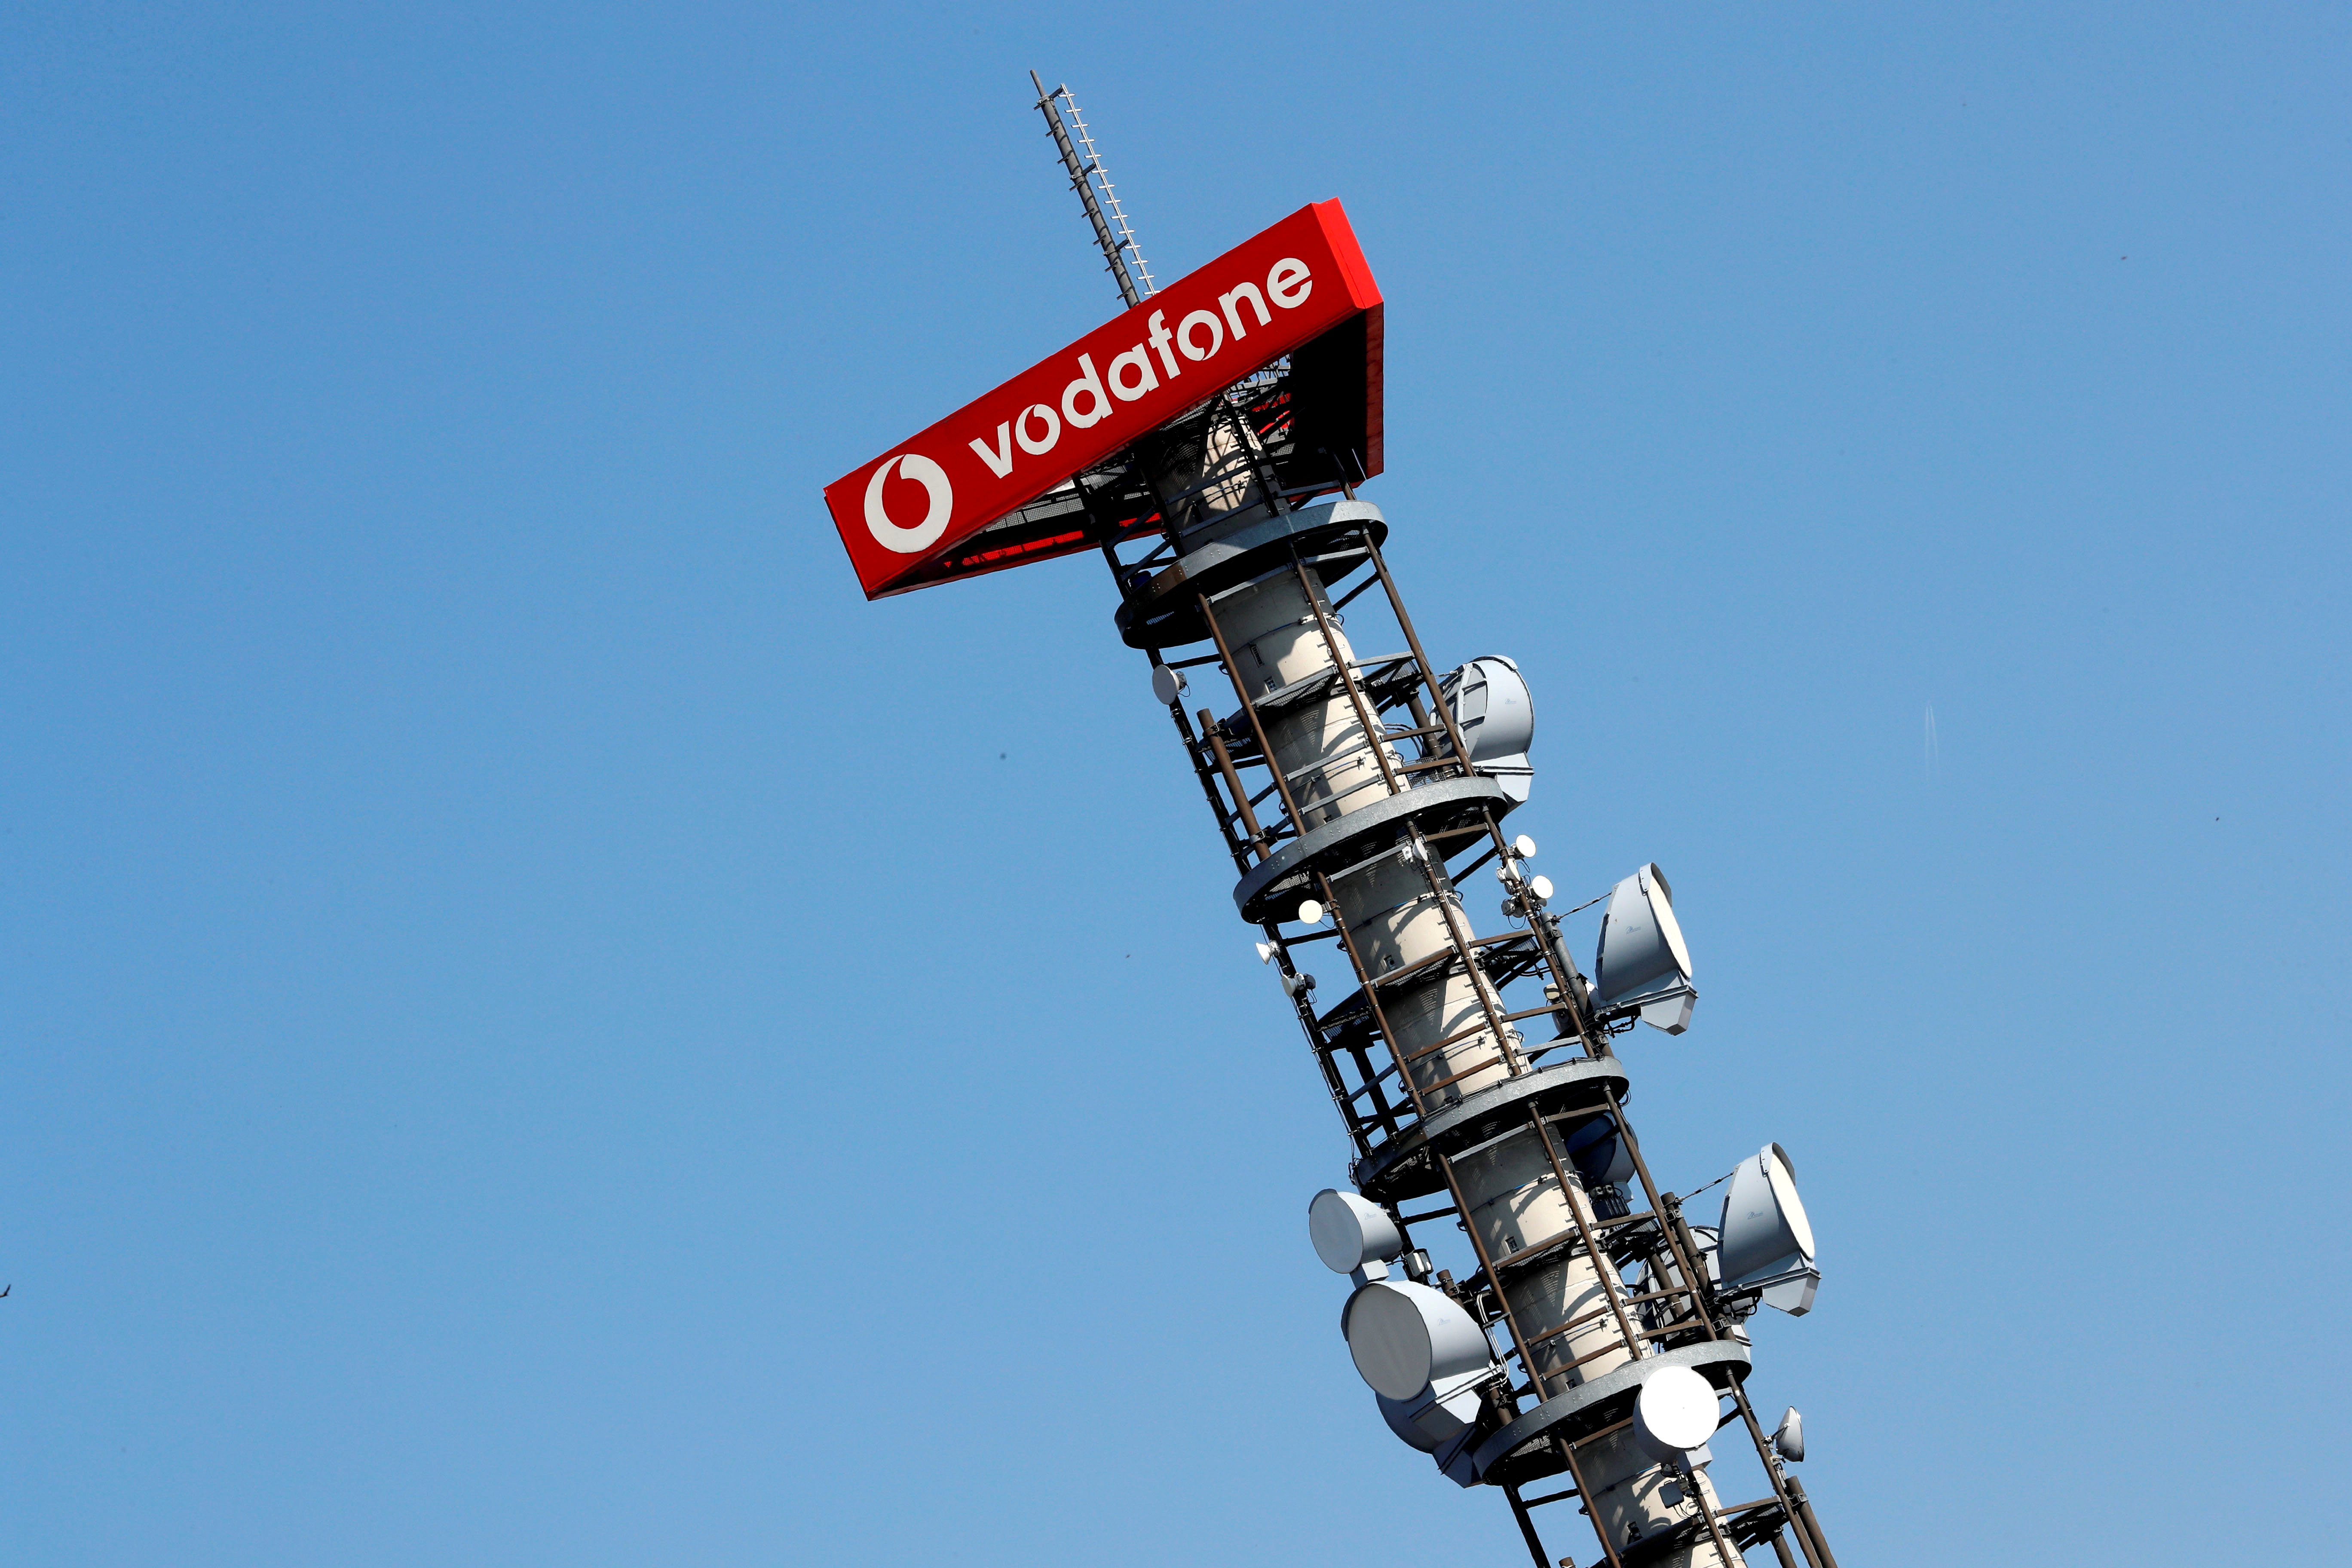 Different types of 4G, 5G and data radio relay antennas for mobile phone networks are pictured on a relay mast operated by Vodafone in Berlin, Germany April 8, 2019. REUTERS/Fabrizio Bensch/File Photo